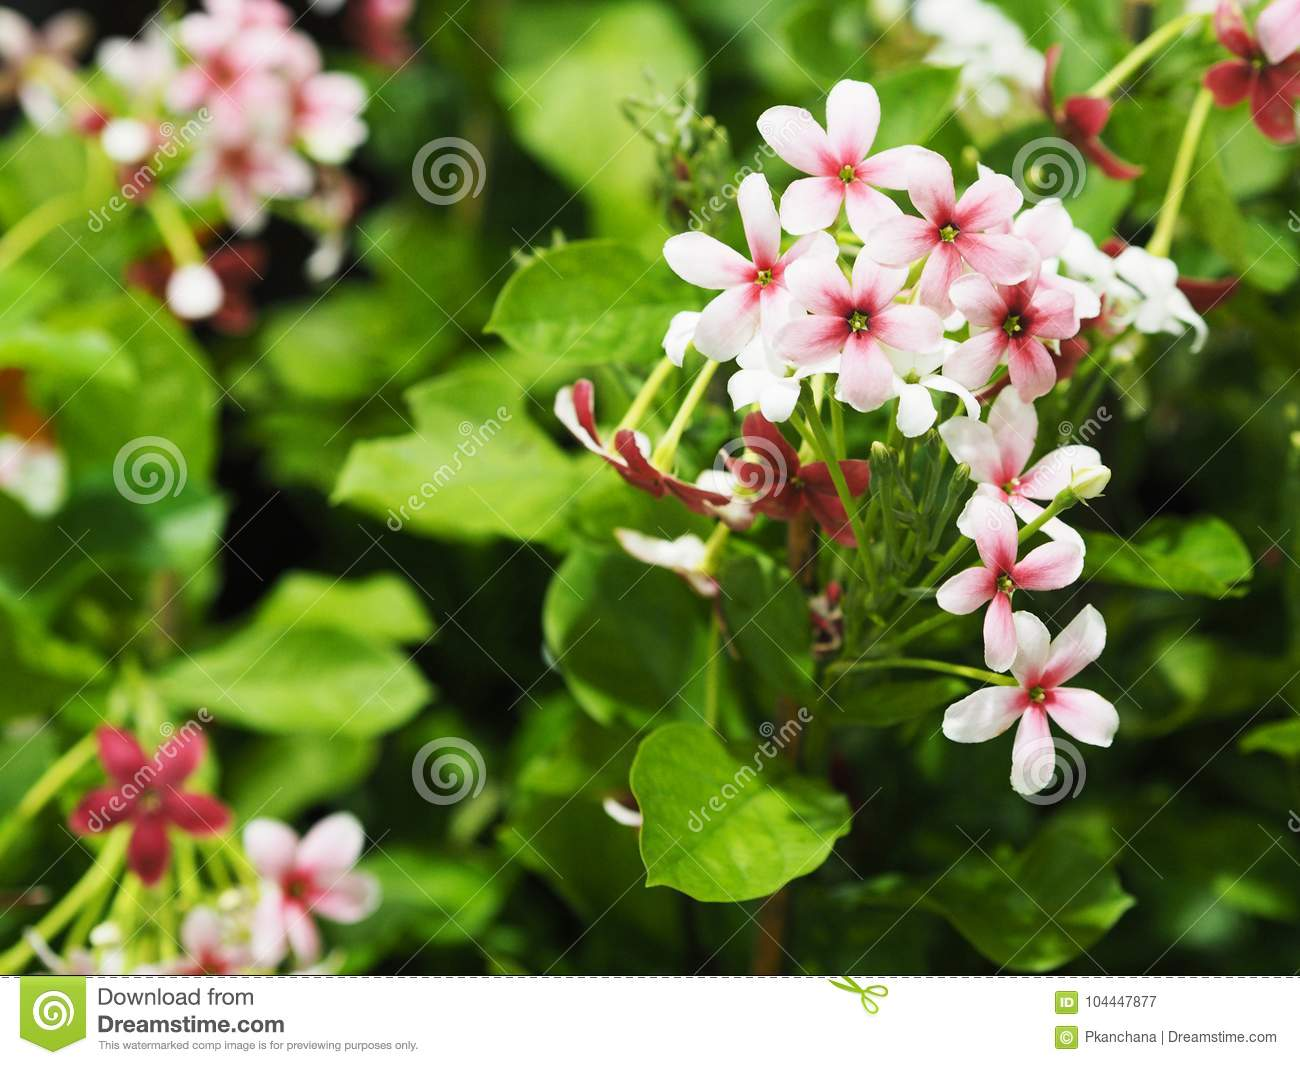 Small white and pink creeper flowers with green leaves stock image small white and pink creeper flowers with green leaves mightylinksfo